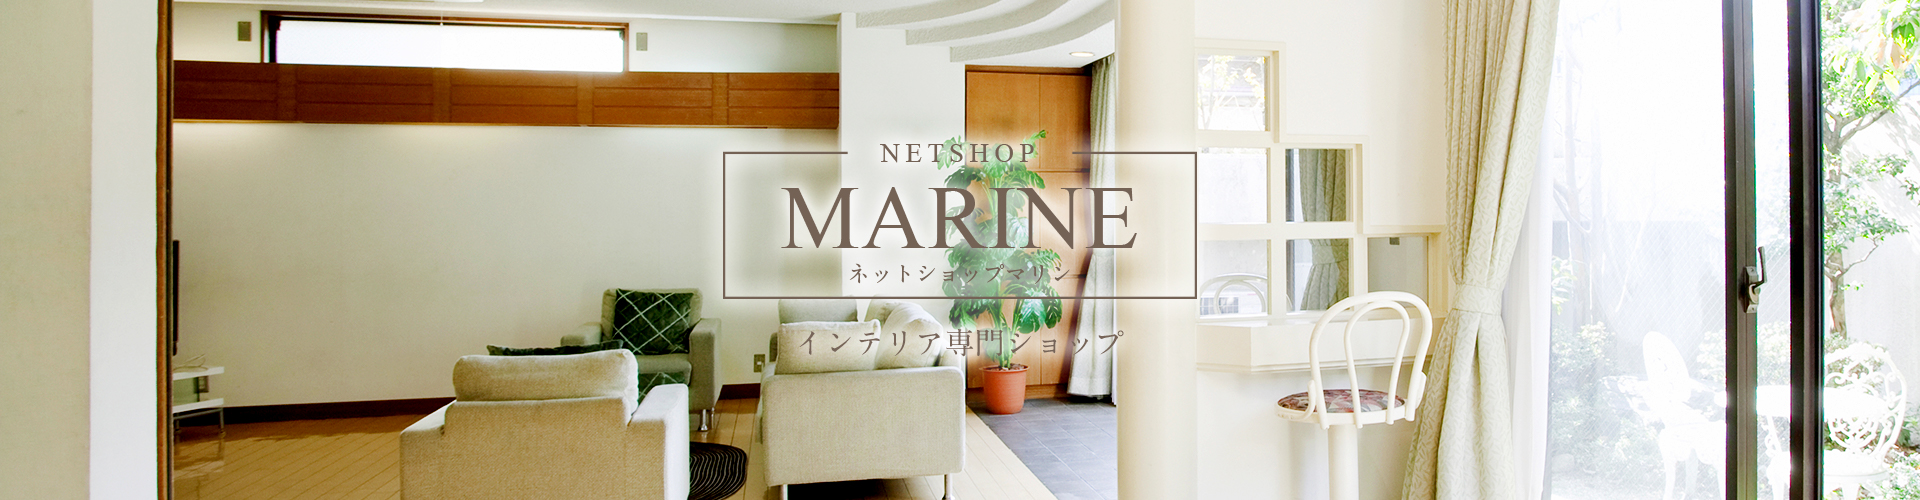 NET SHOP MARINE